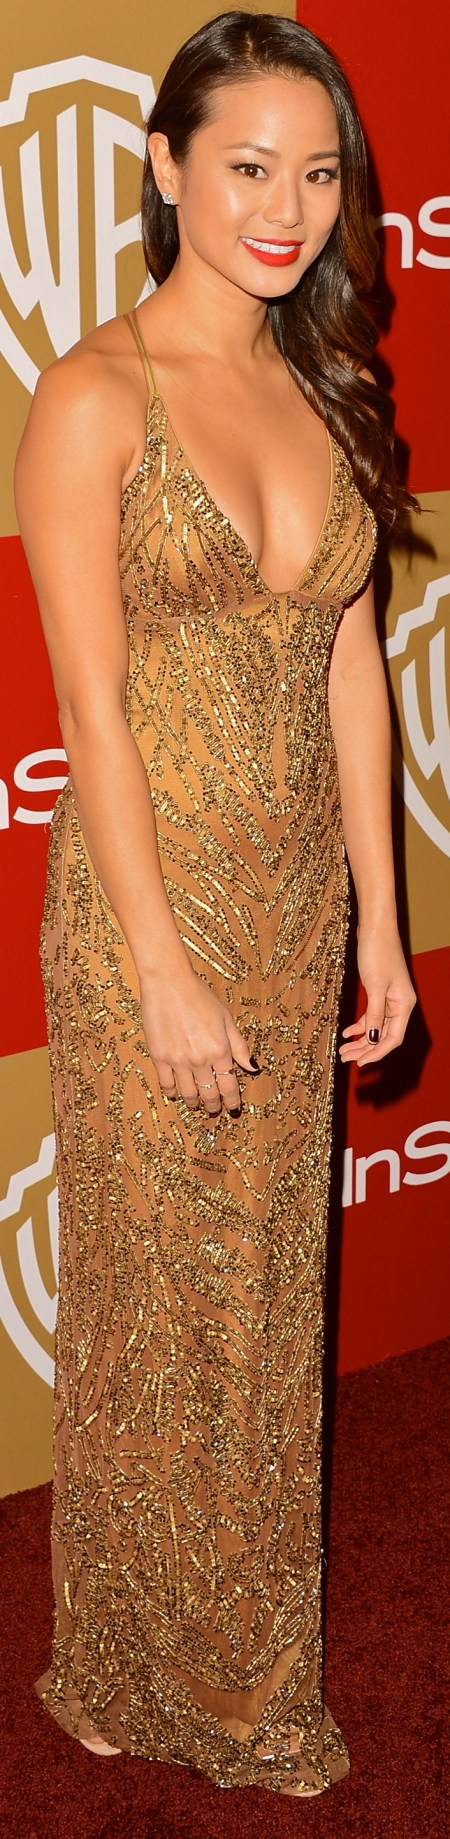 Jamie-Chung---2013-Warner-Bros-InStyle-Golden-Globes-Party--04